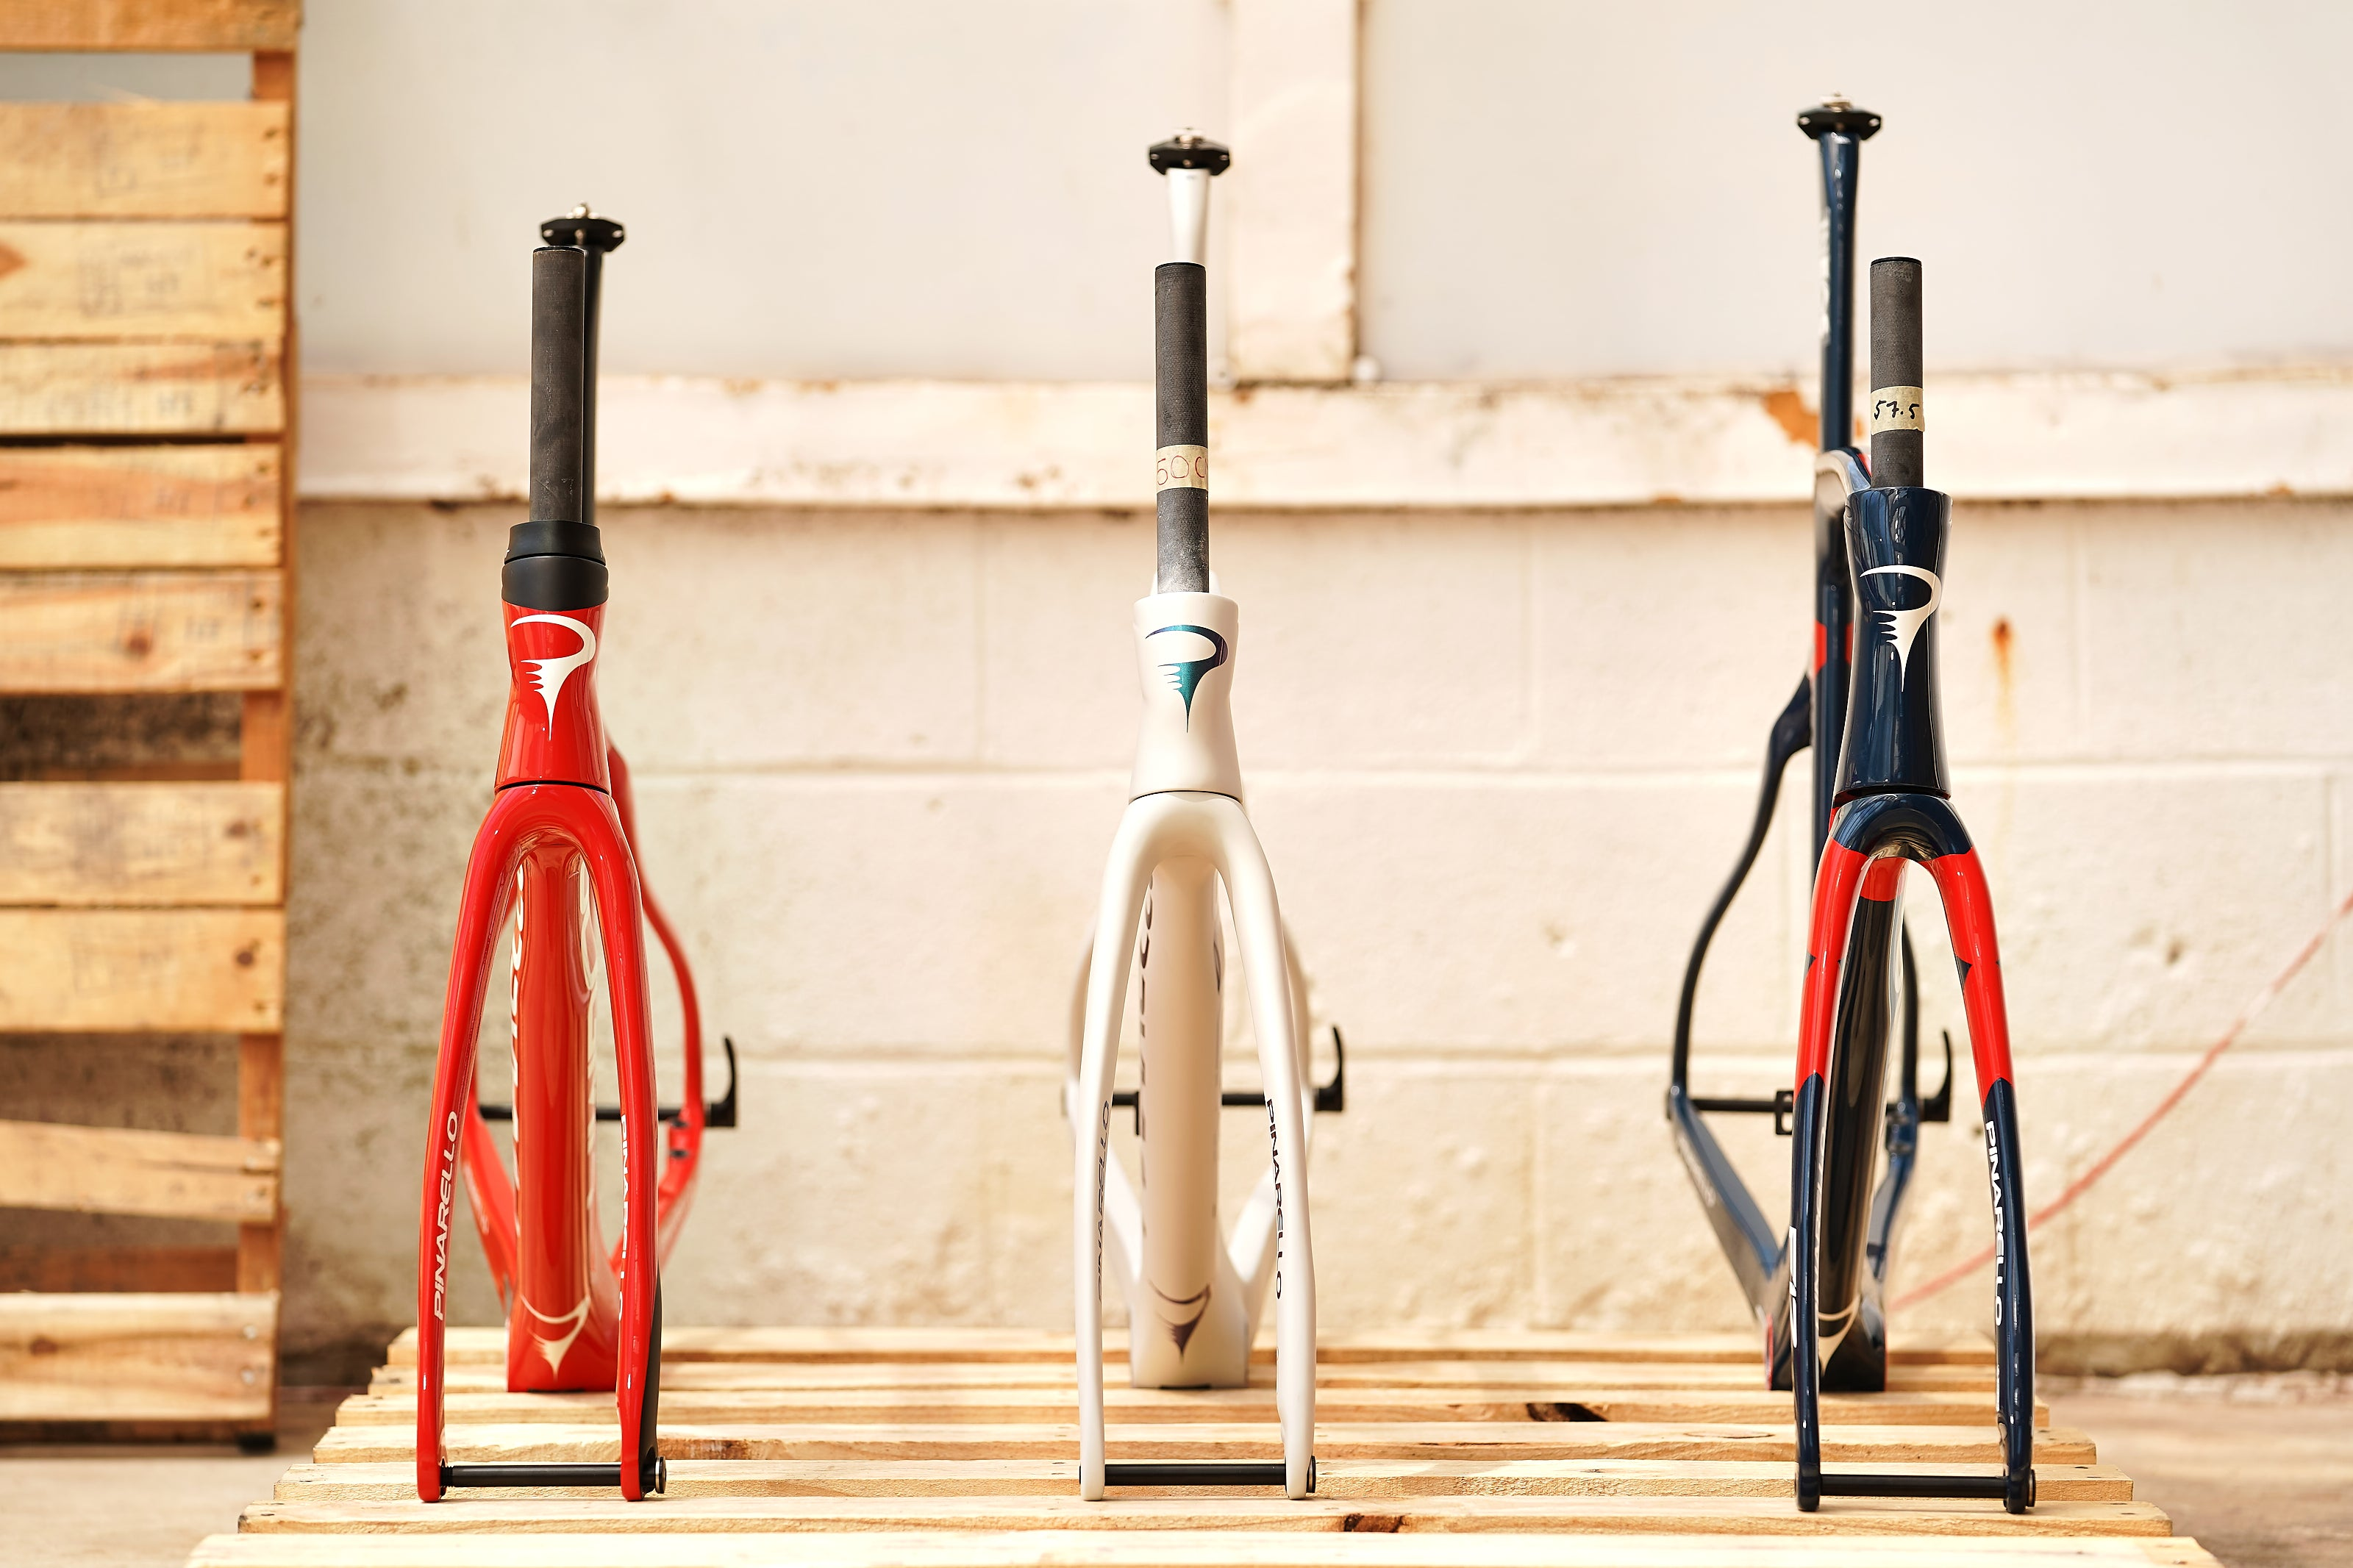 Pinarello Dogma F12 frames lined up Fourth of July